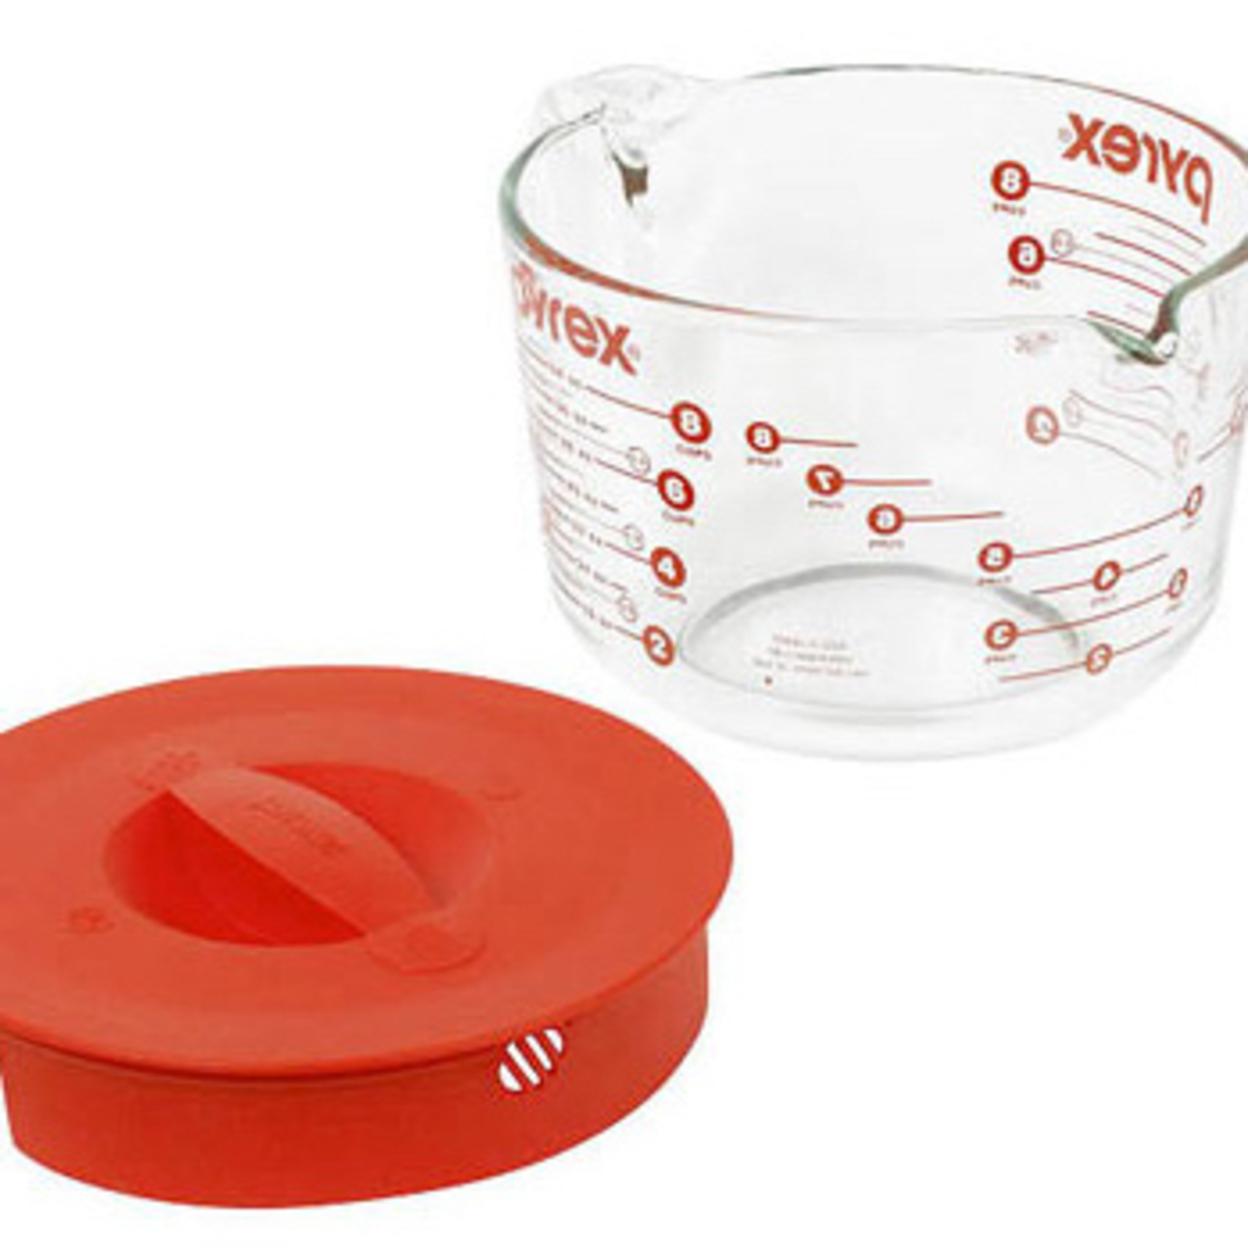 Pyrex 1055161 8 Cup Mix N Measuring Cup - Pack Of 2 5a3d4b252a00e466b9610922